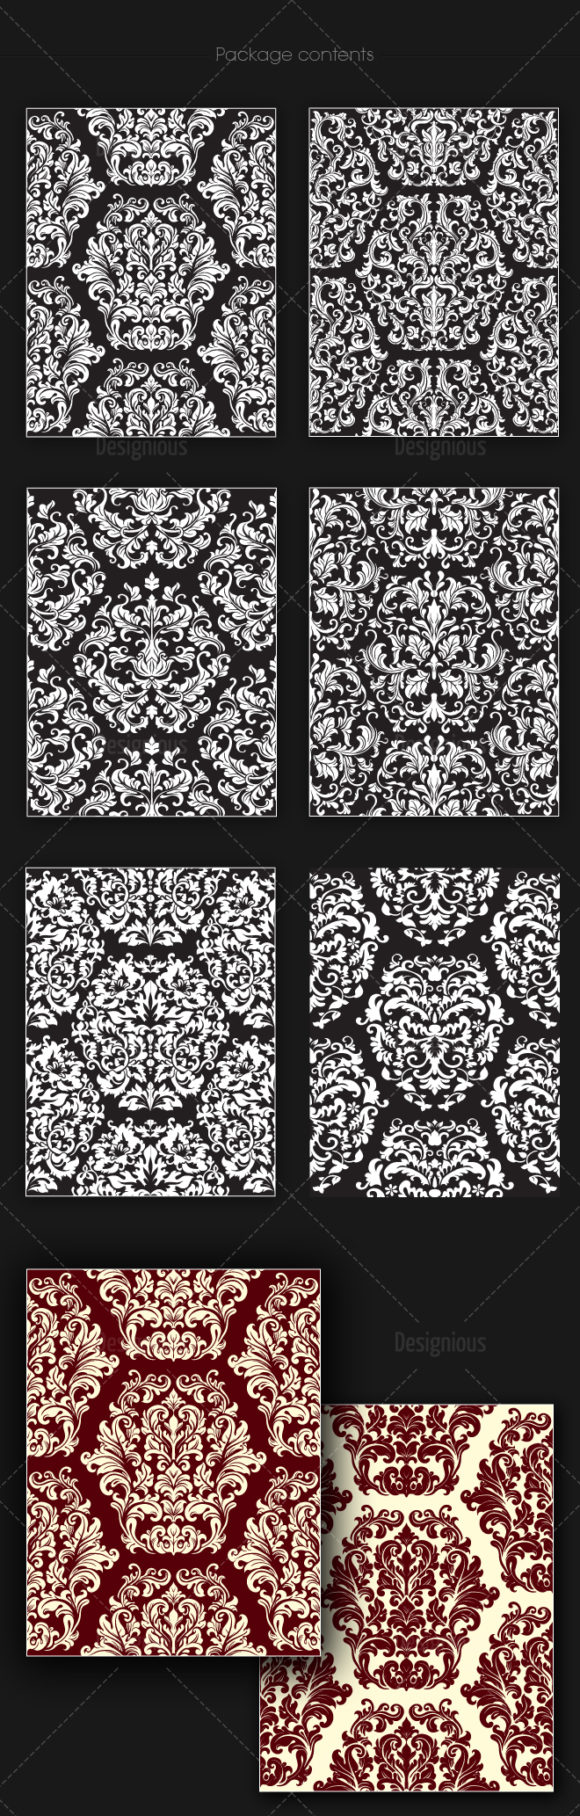 Seamless Patterns Vector Pack 144 6